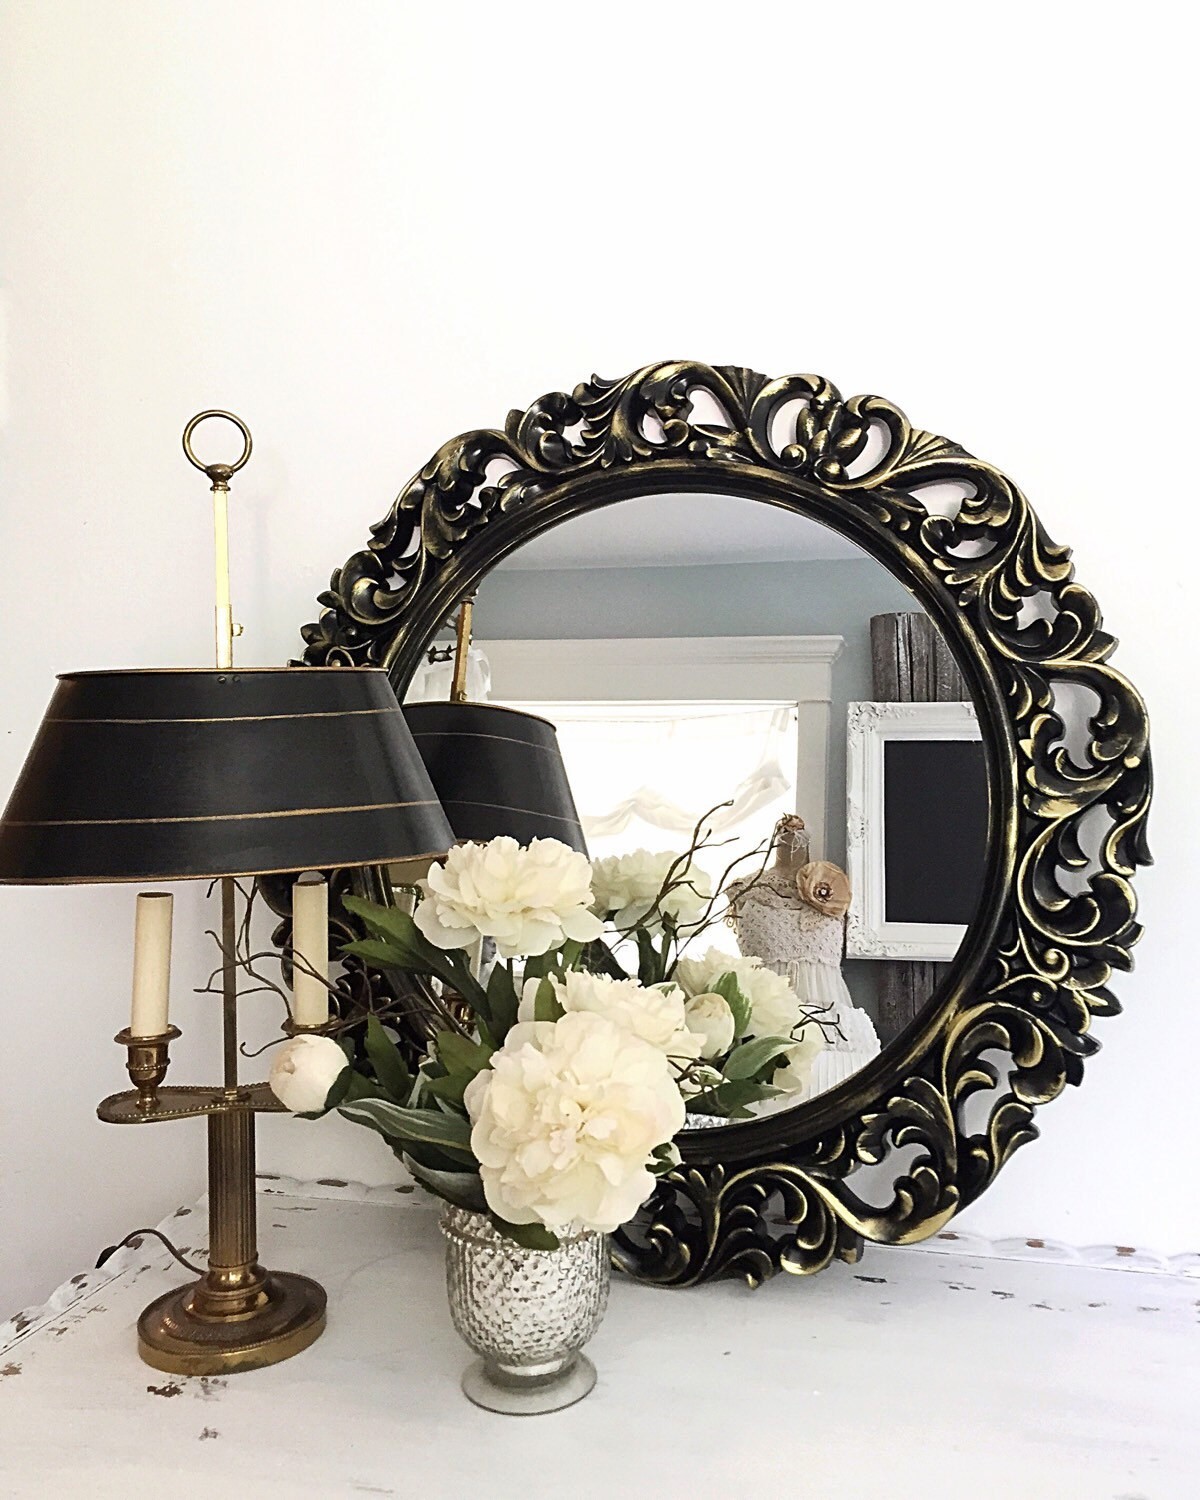 black gold baroque mirror large vintage style decorative wall